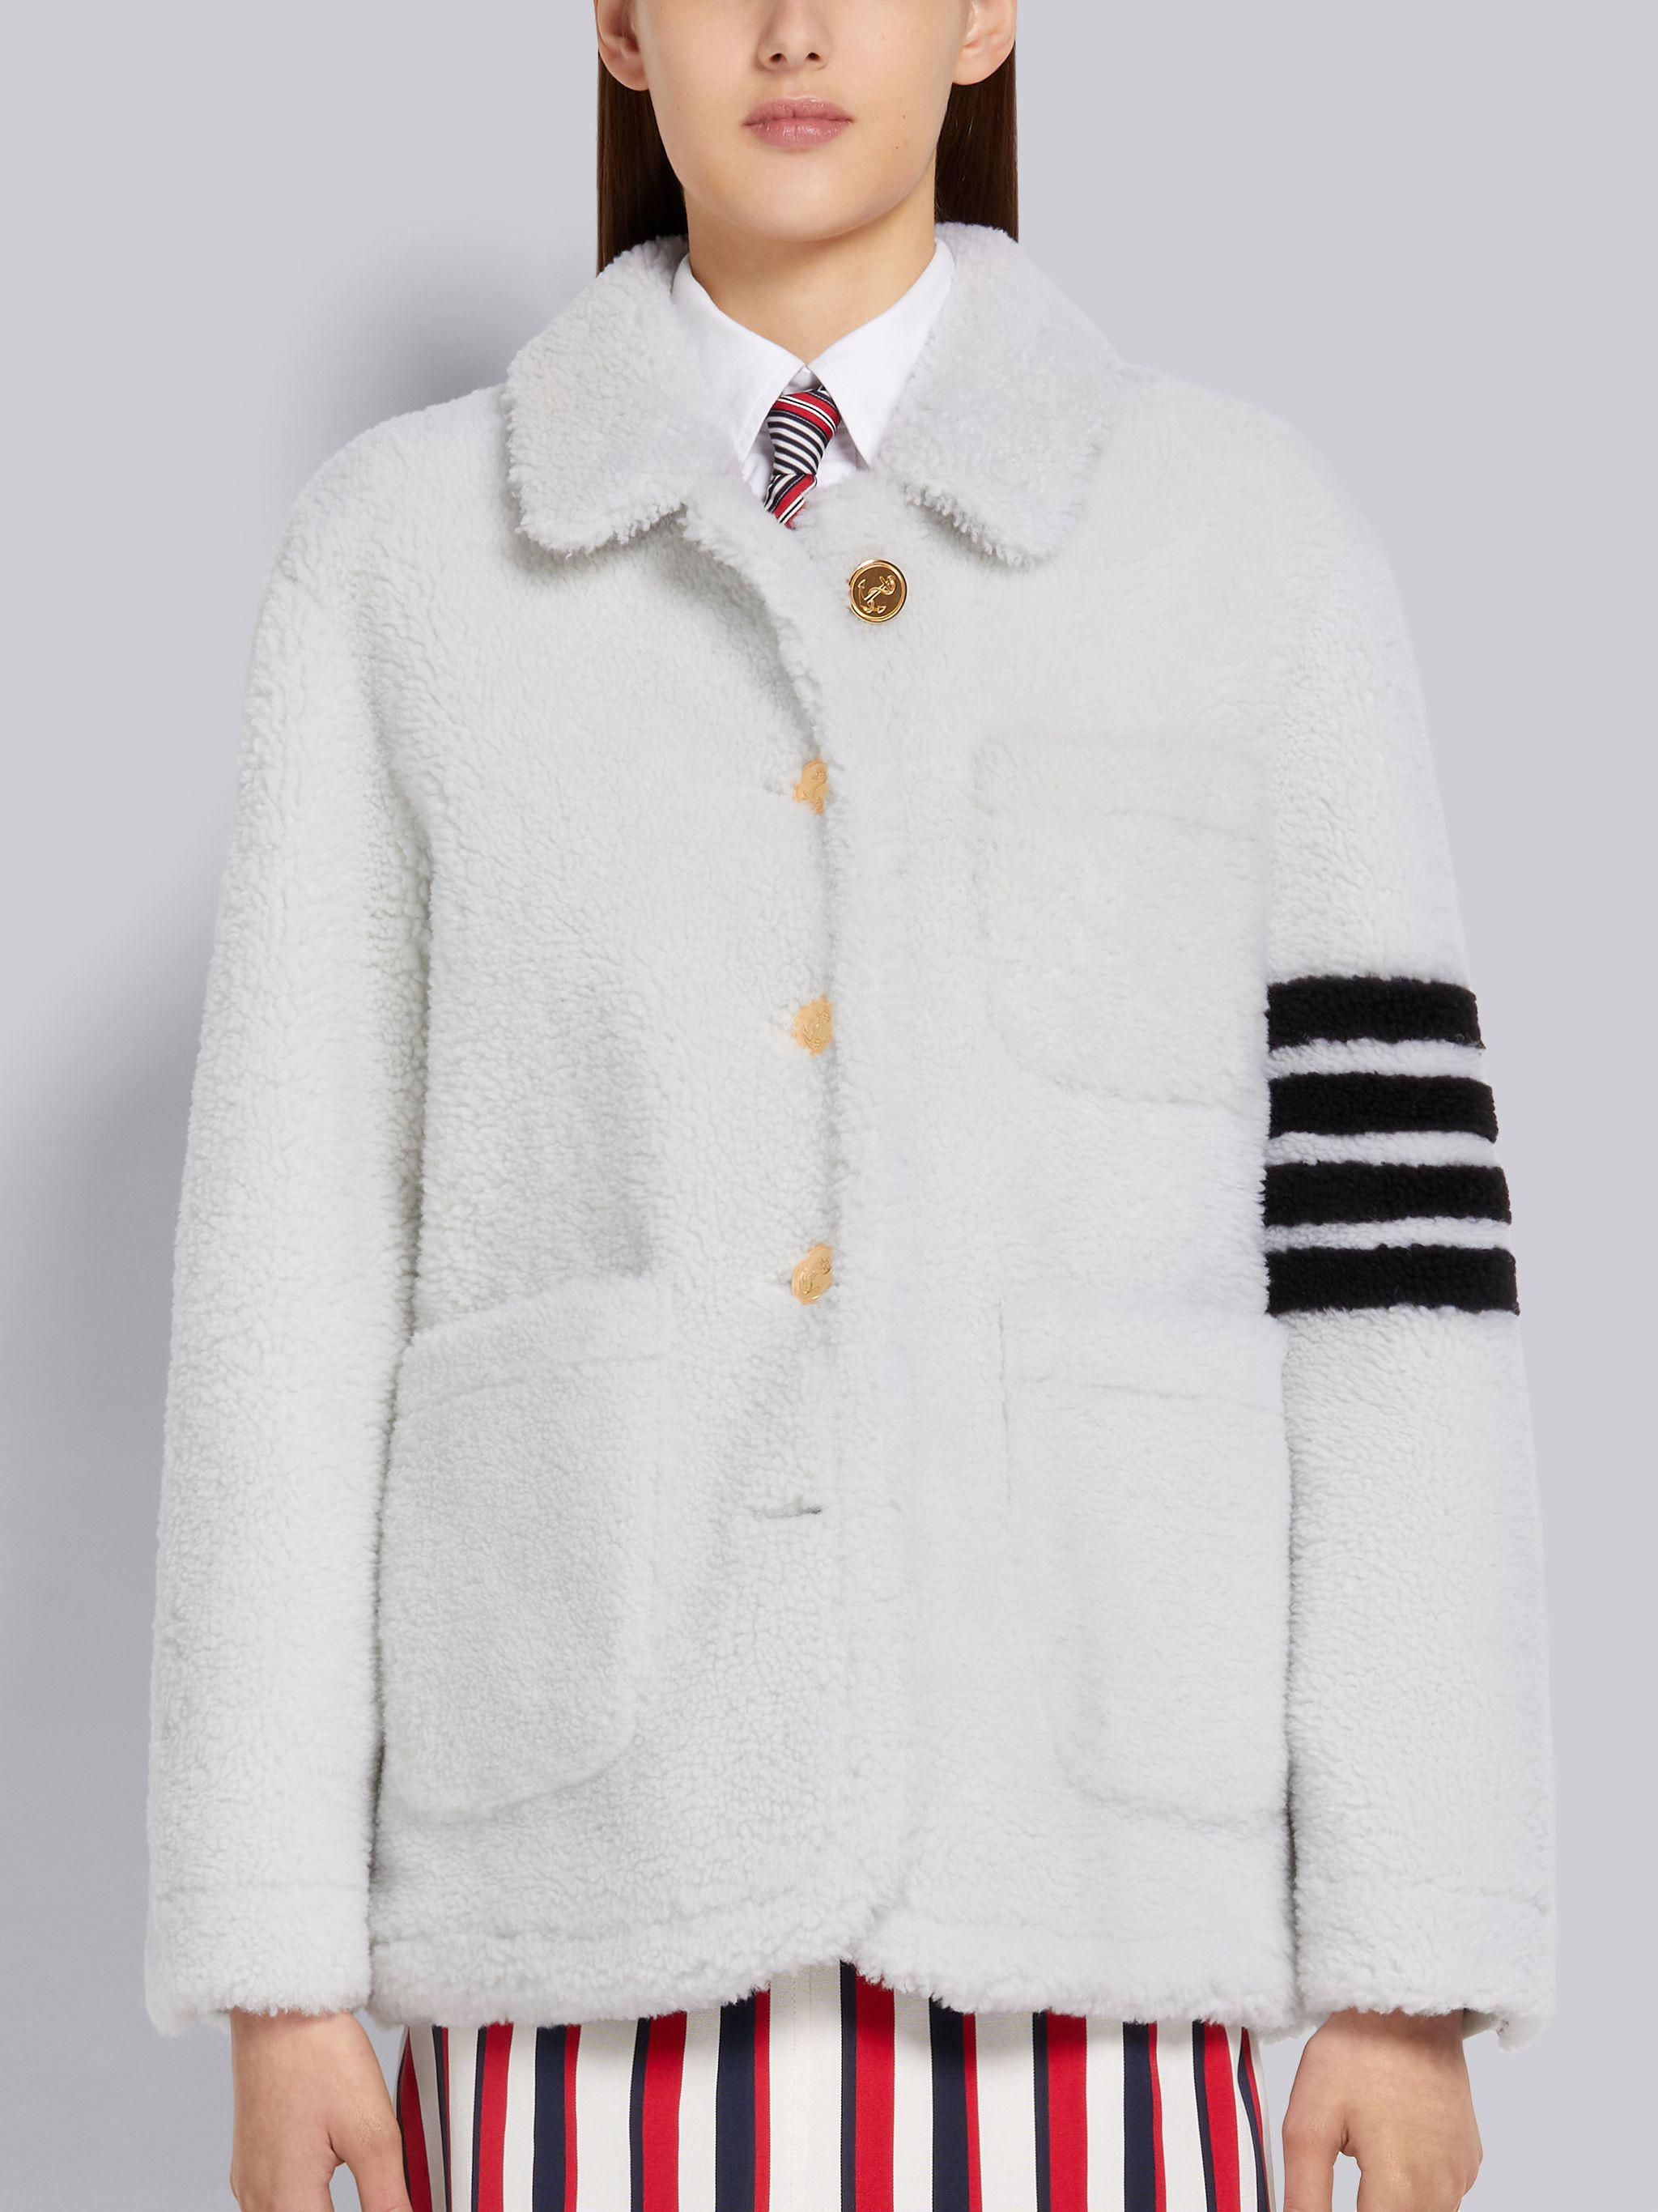 White Heavy Shearling Button Front Patch Pocket Round Collar Sack Jacket